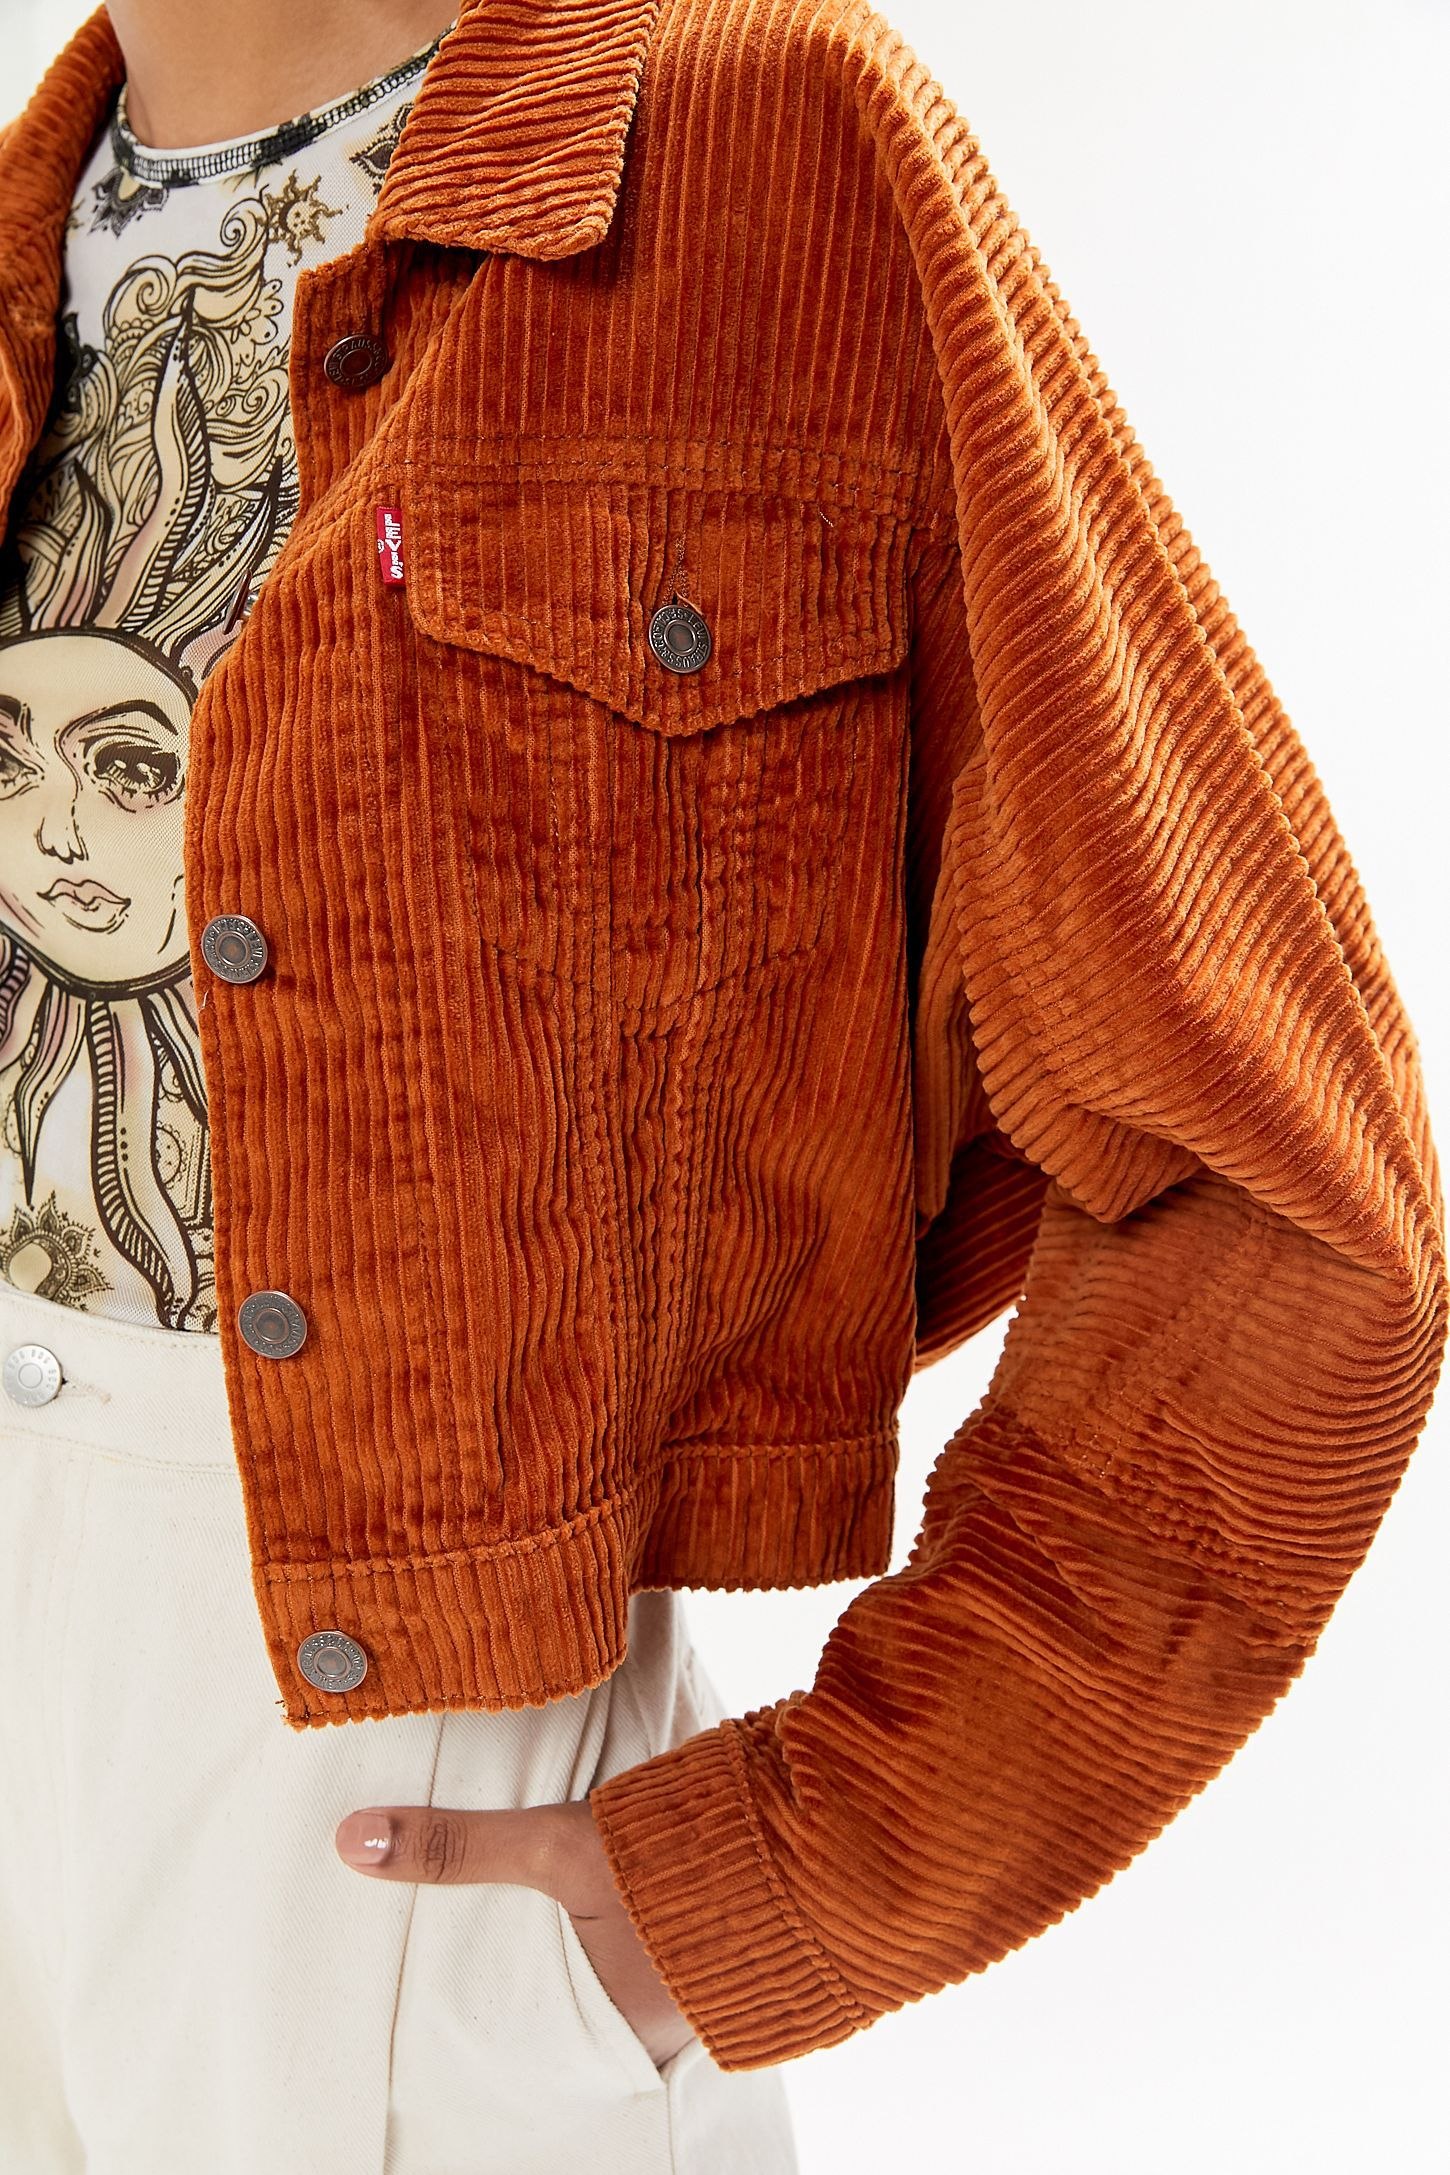 Pin by Lacey Johnson on Western in 2019 | Corduroy, Corduroy